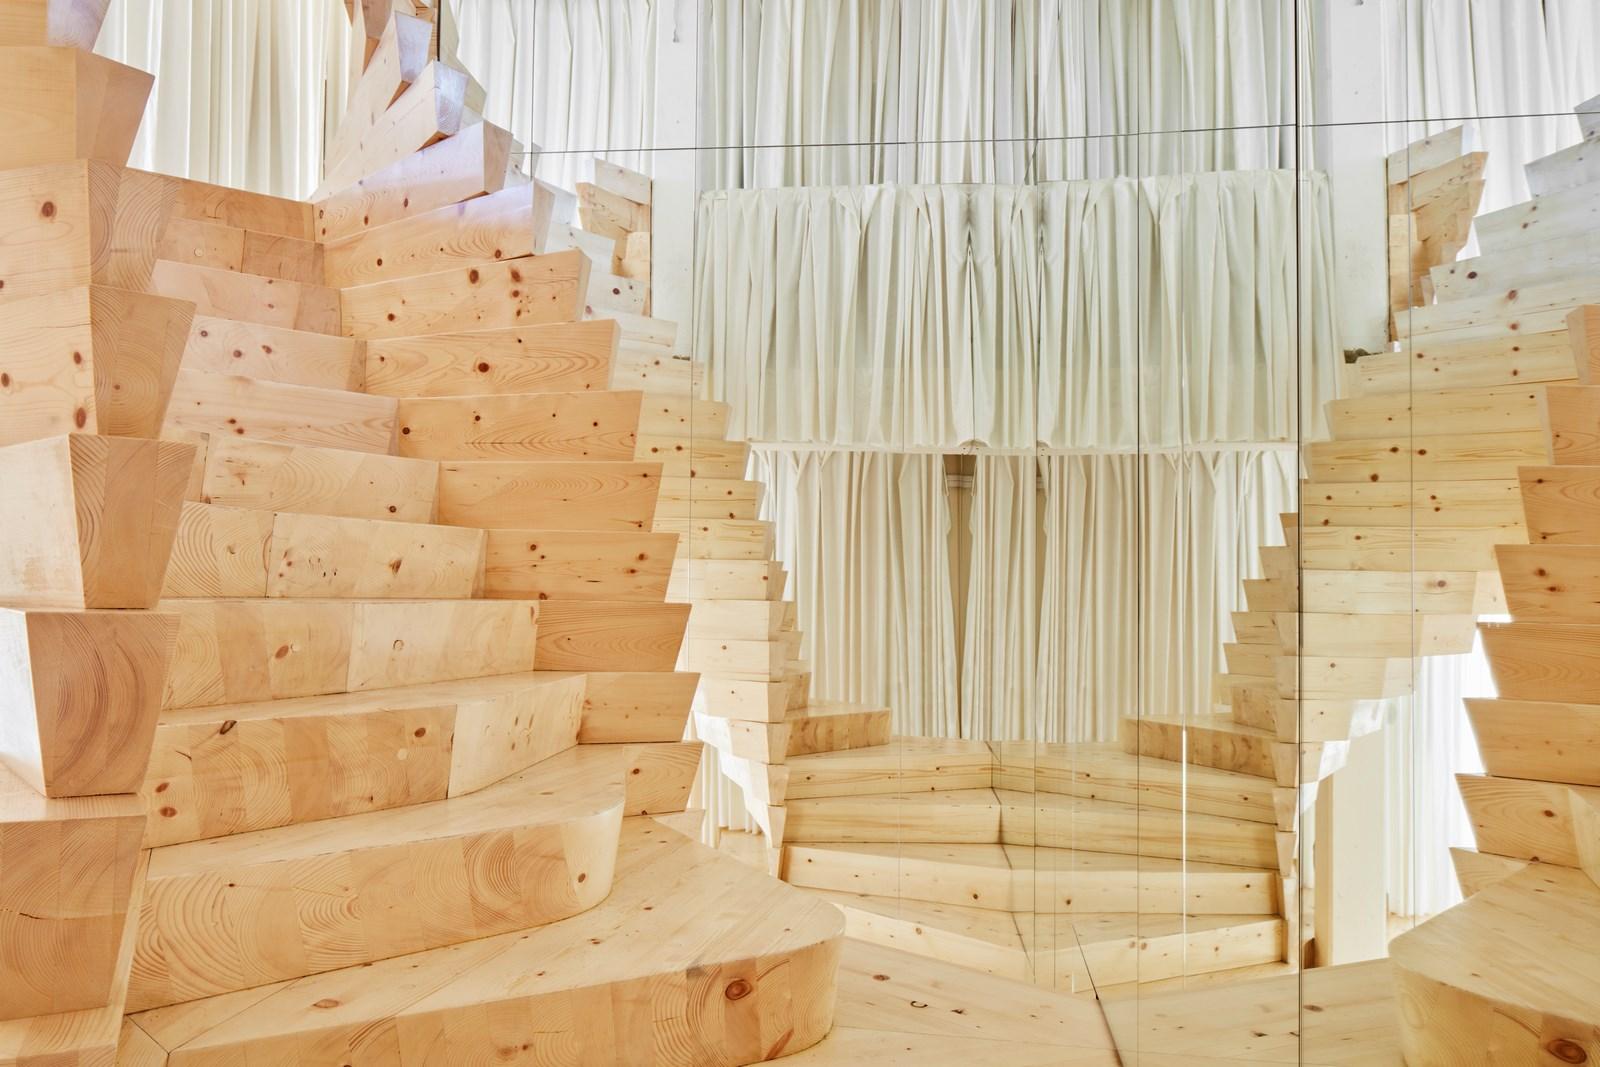 00 ACME-Staircase-14-Ed Reeve (Copy)